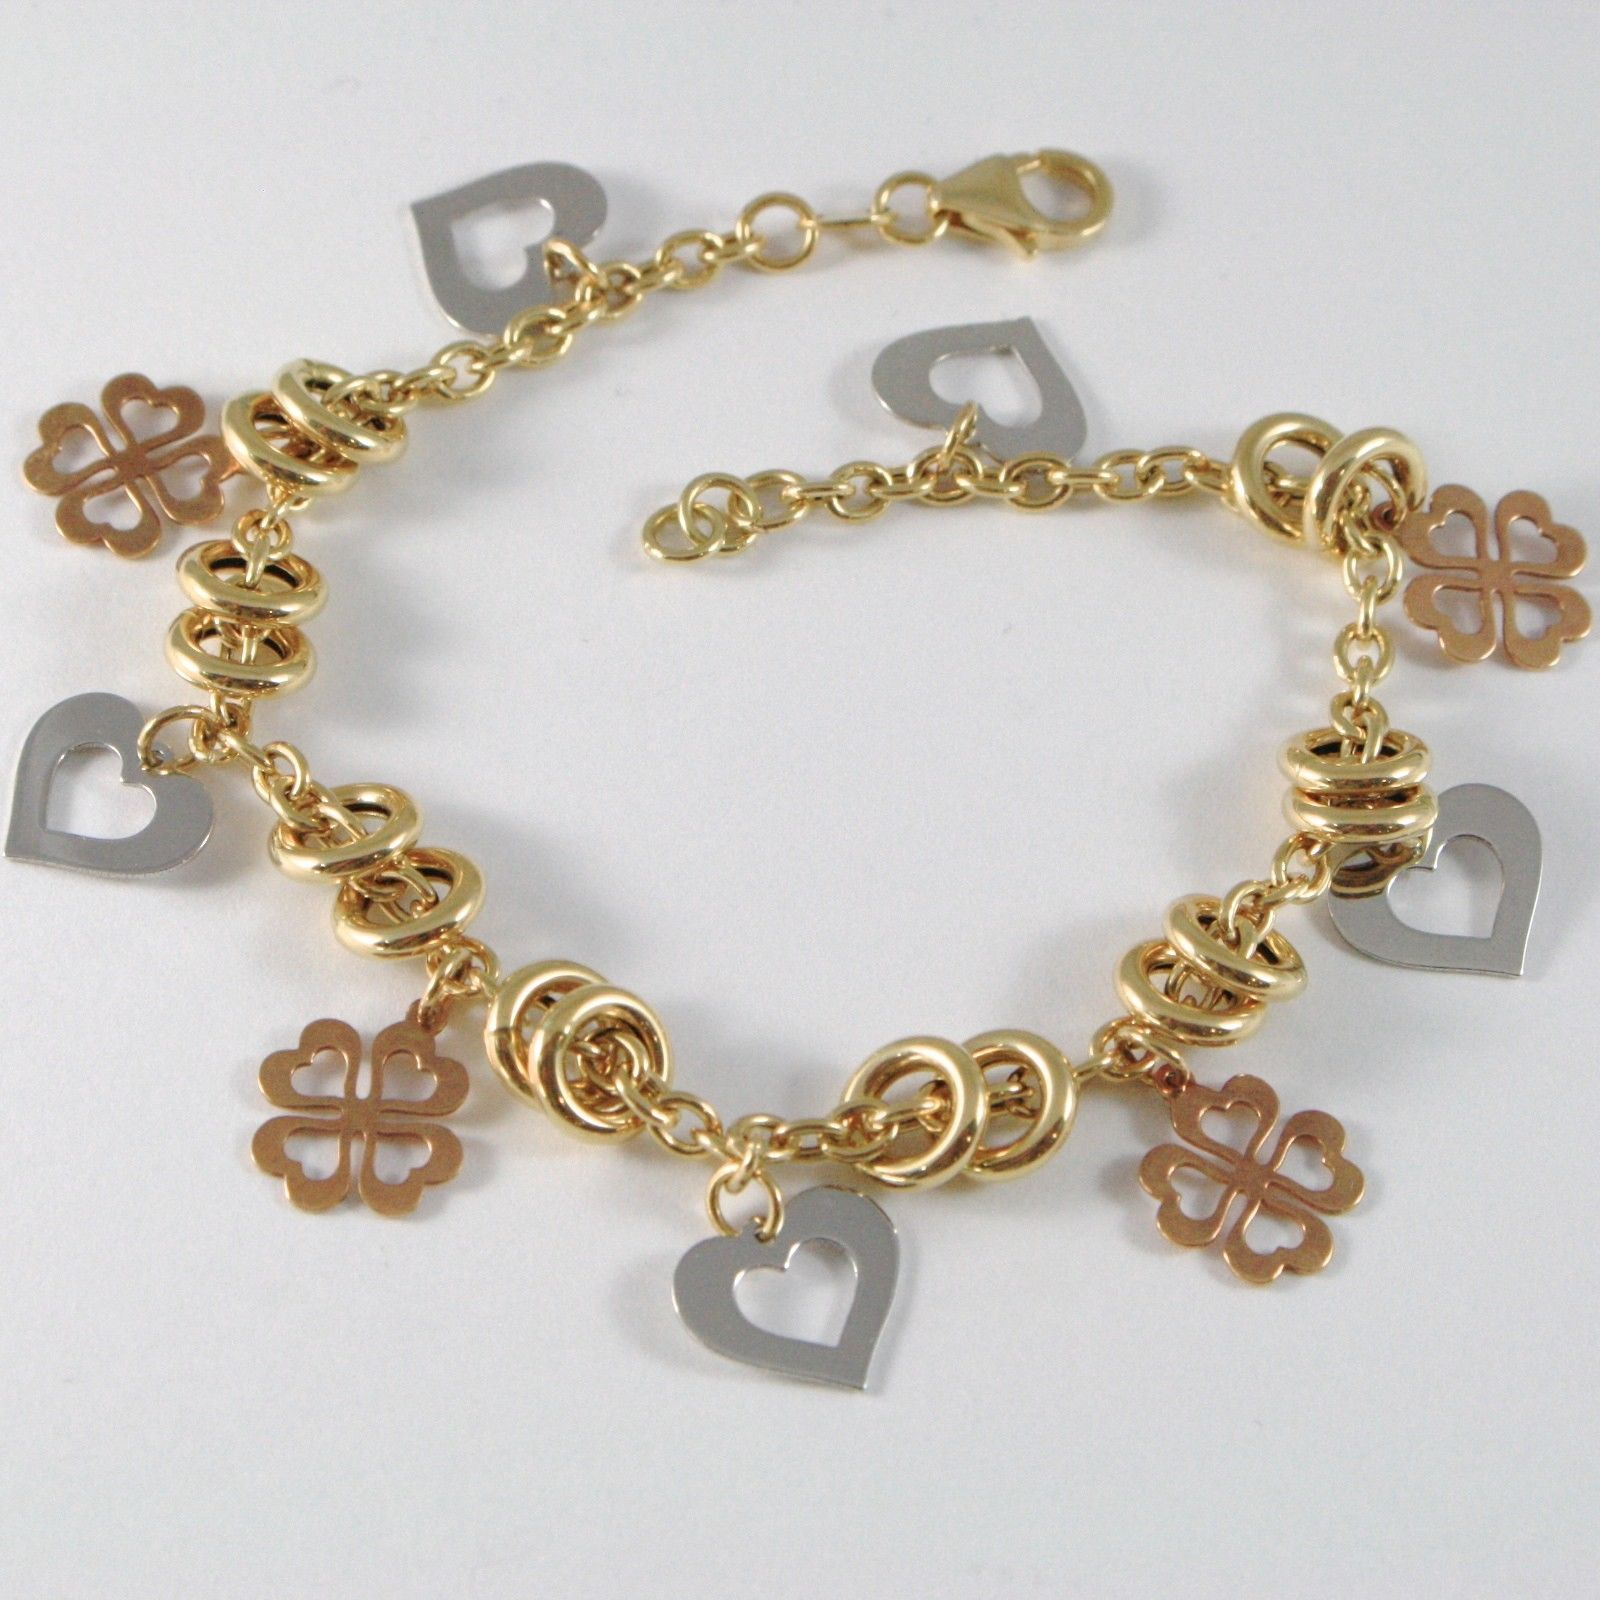 18k YELLOW WHITE ROSE GOLD BRACELET, ROLO, CIRCLE, HEART AND FOUR LEAF PENDANT